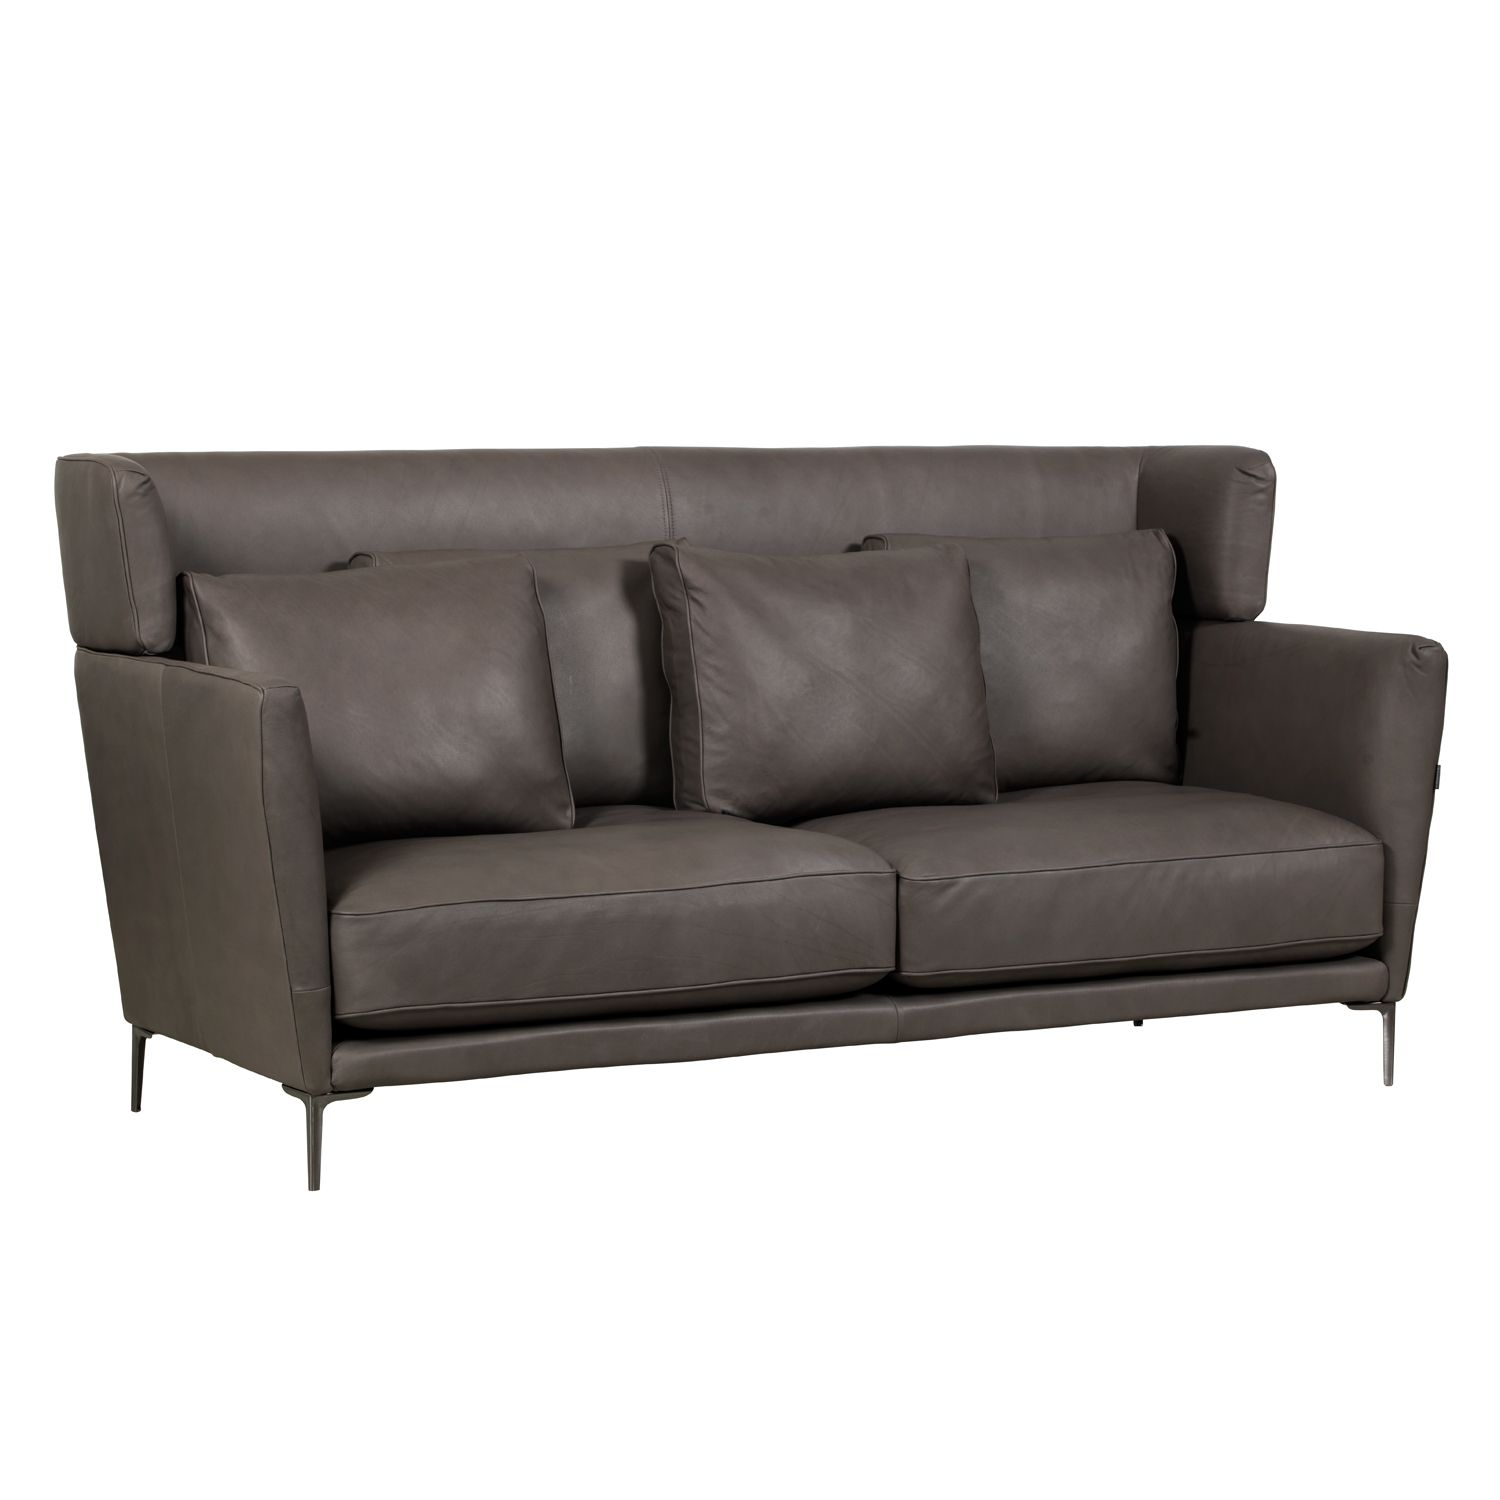 Aura high back Scandinavian design sofa